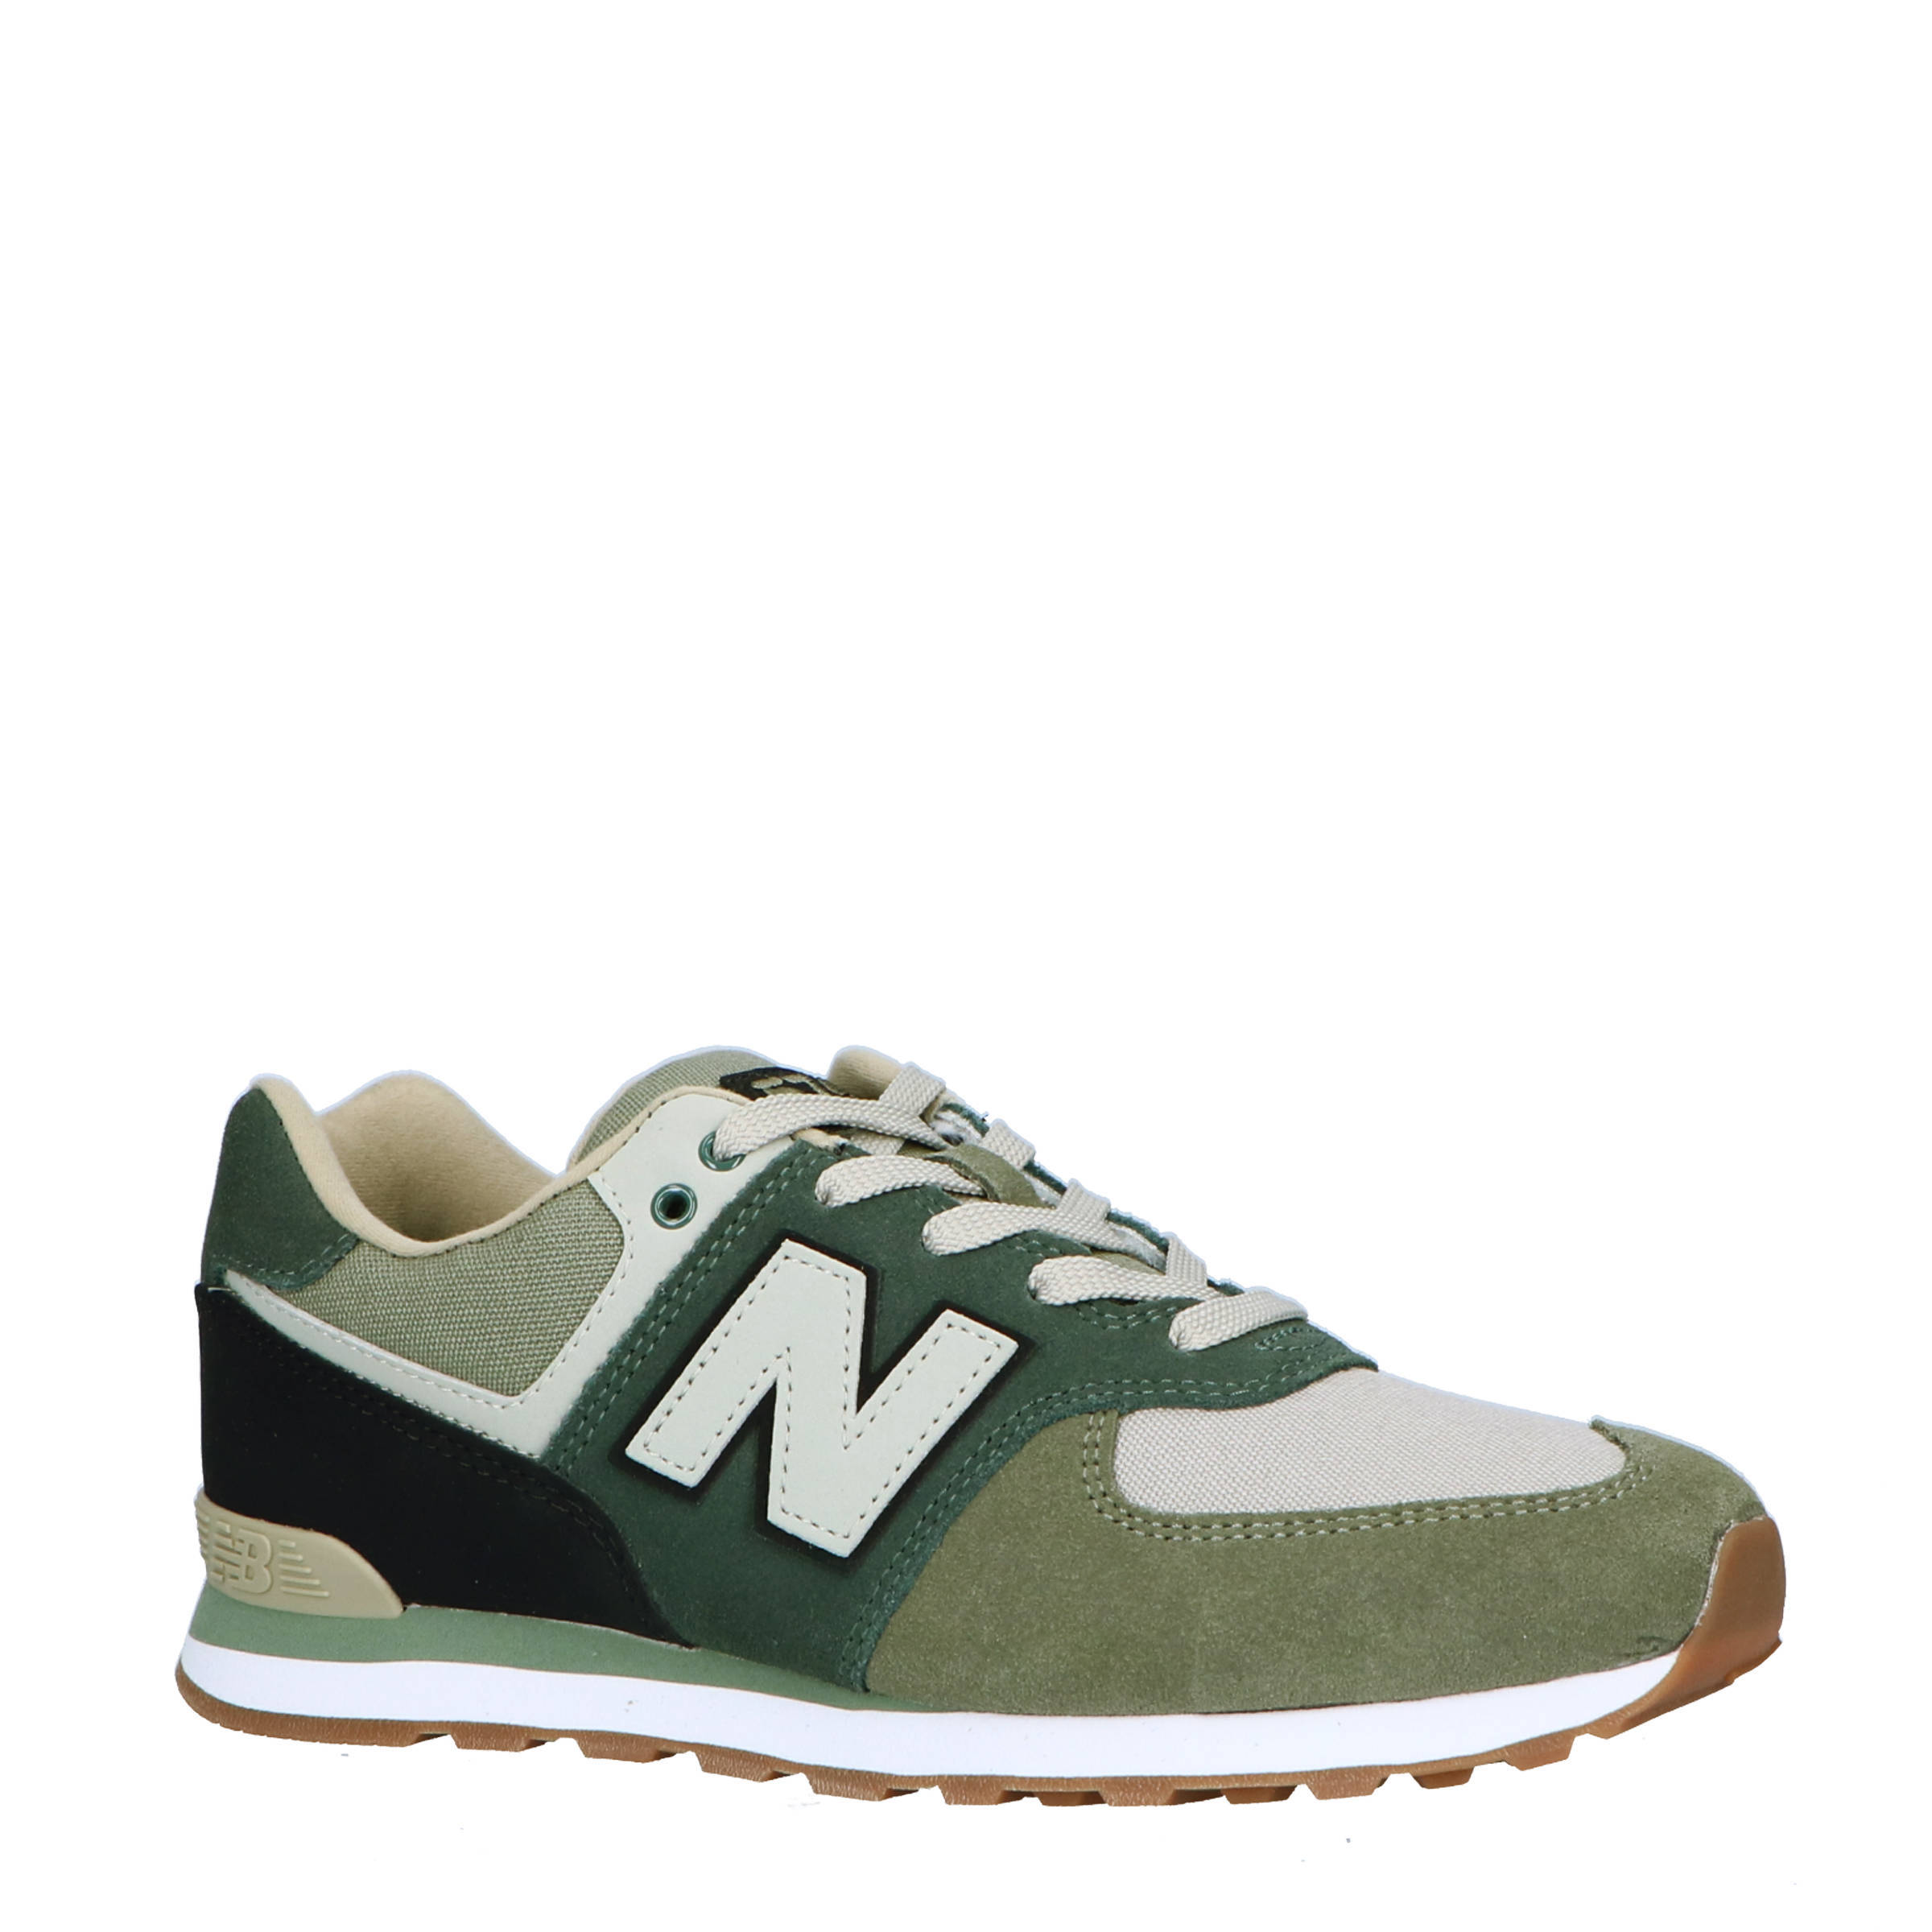 new balance sneakers groen